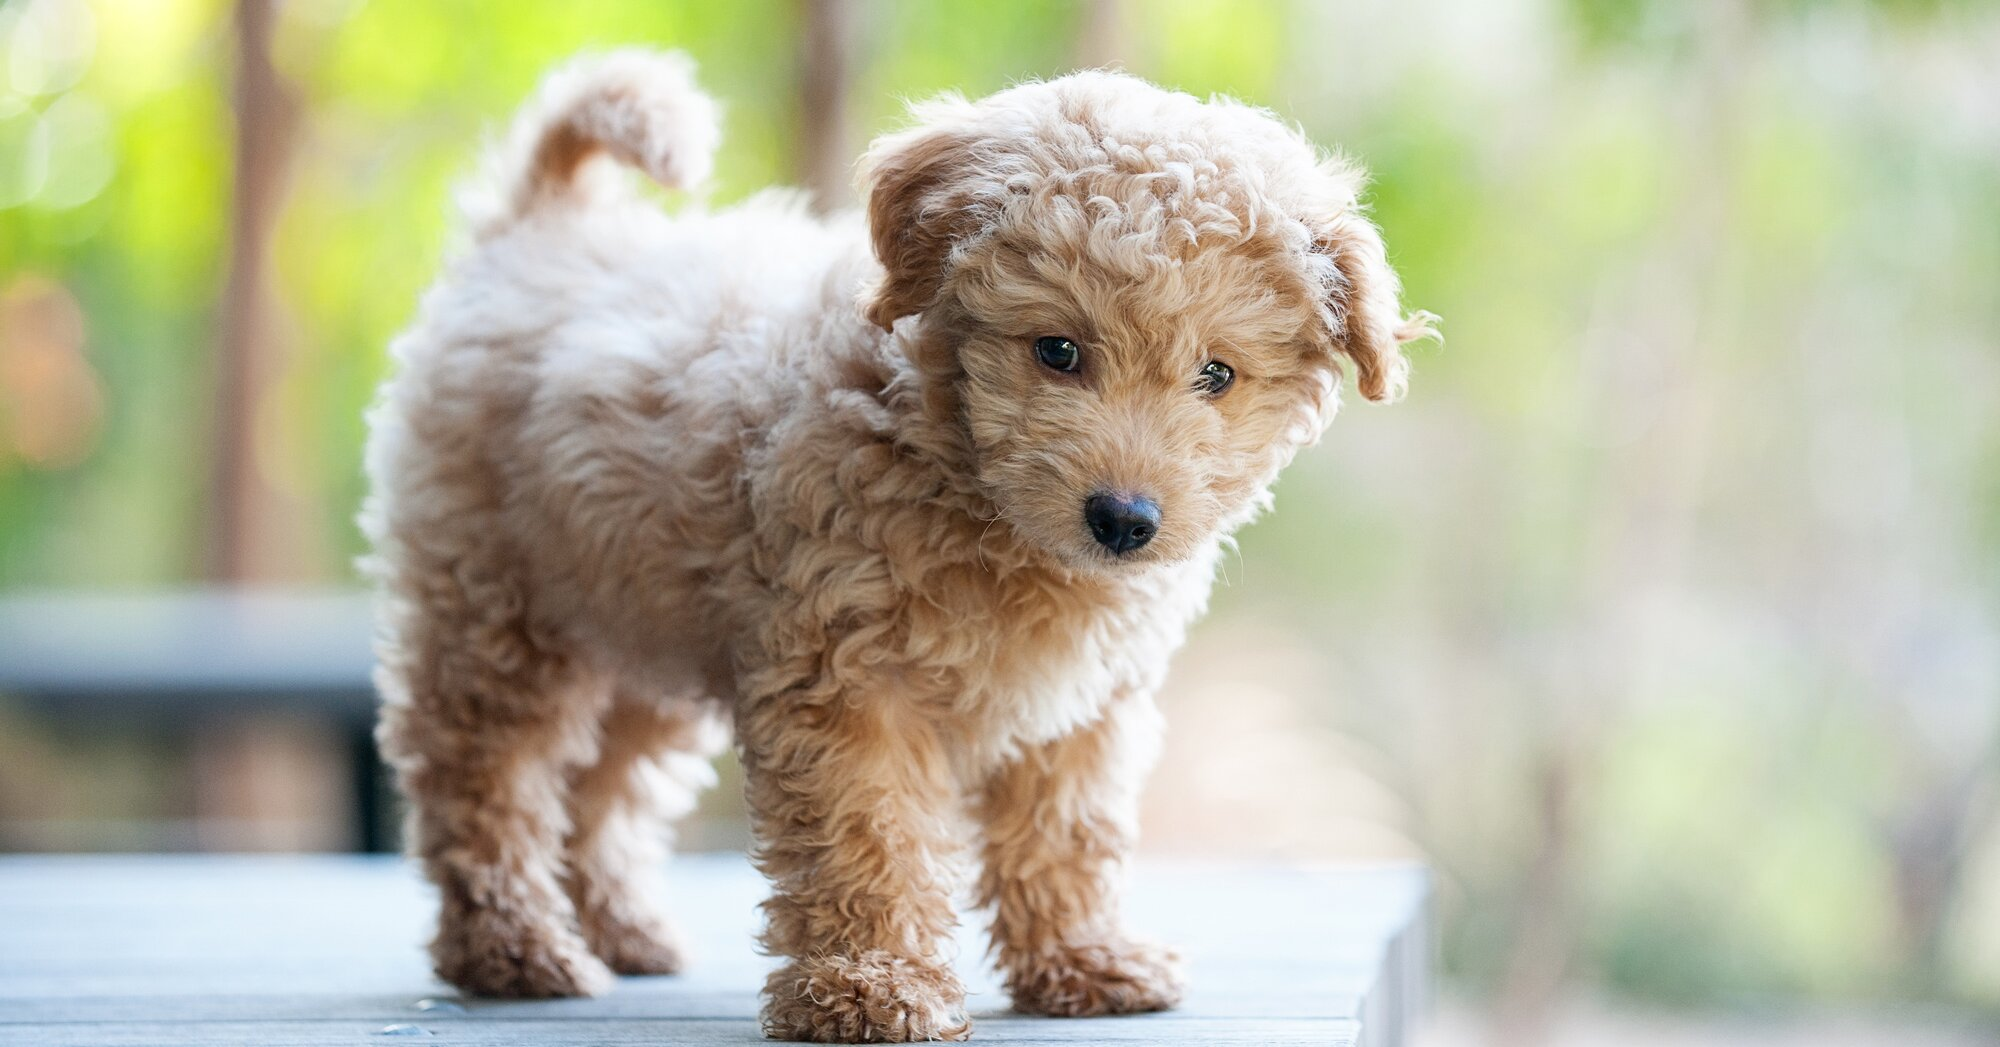 Dog Breeds That Look Like Puppies At